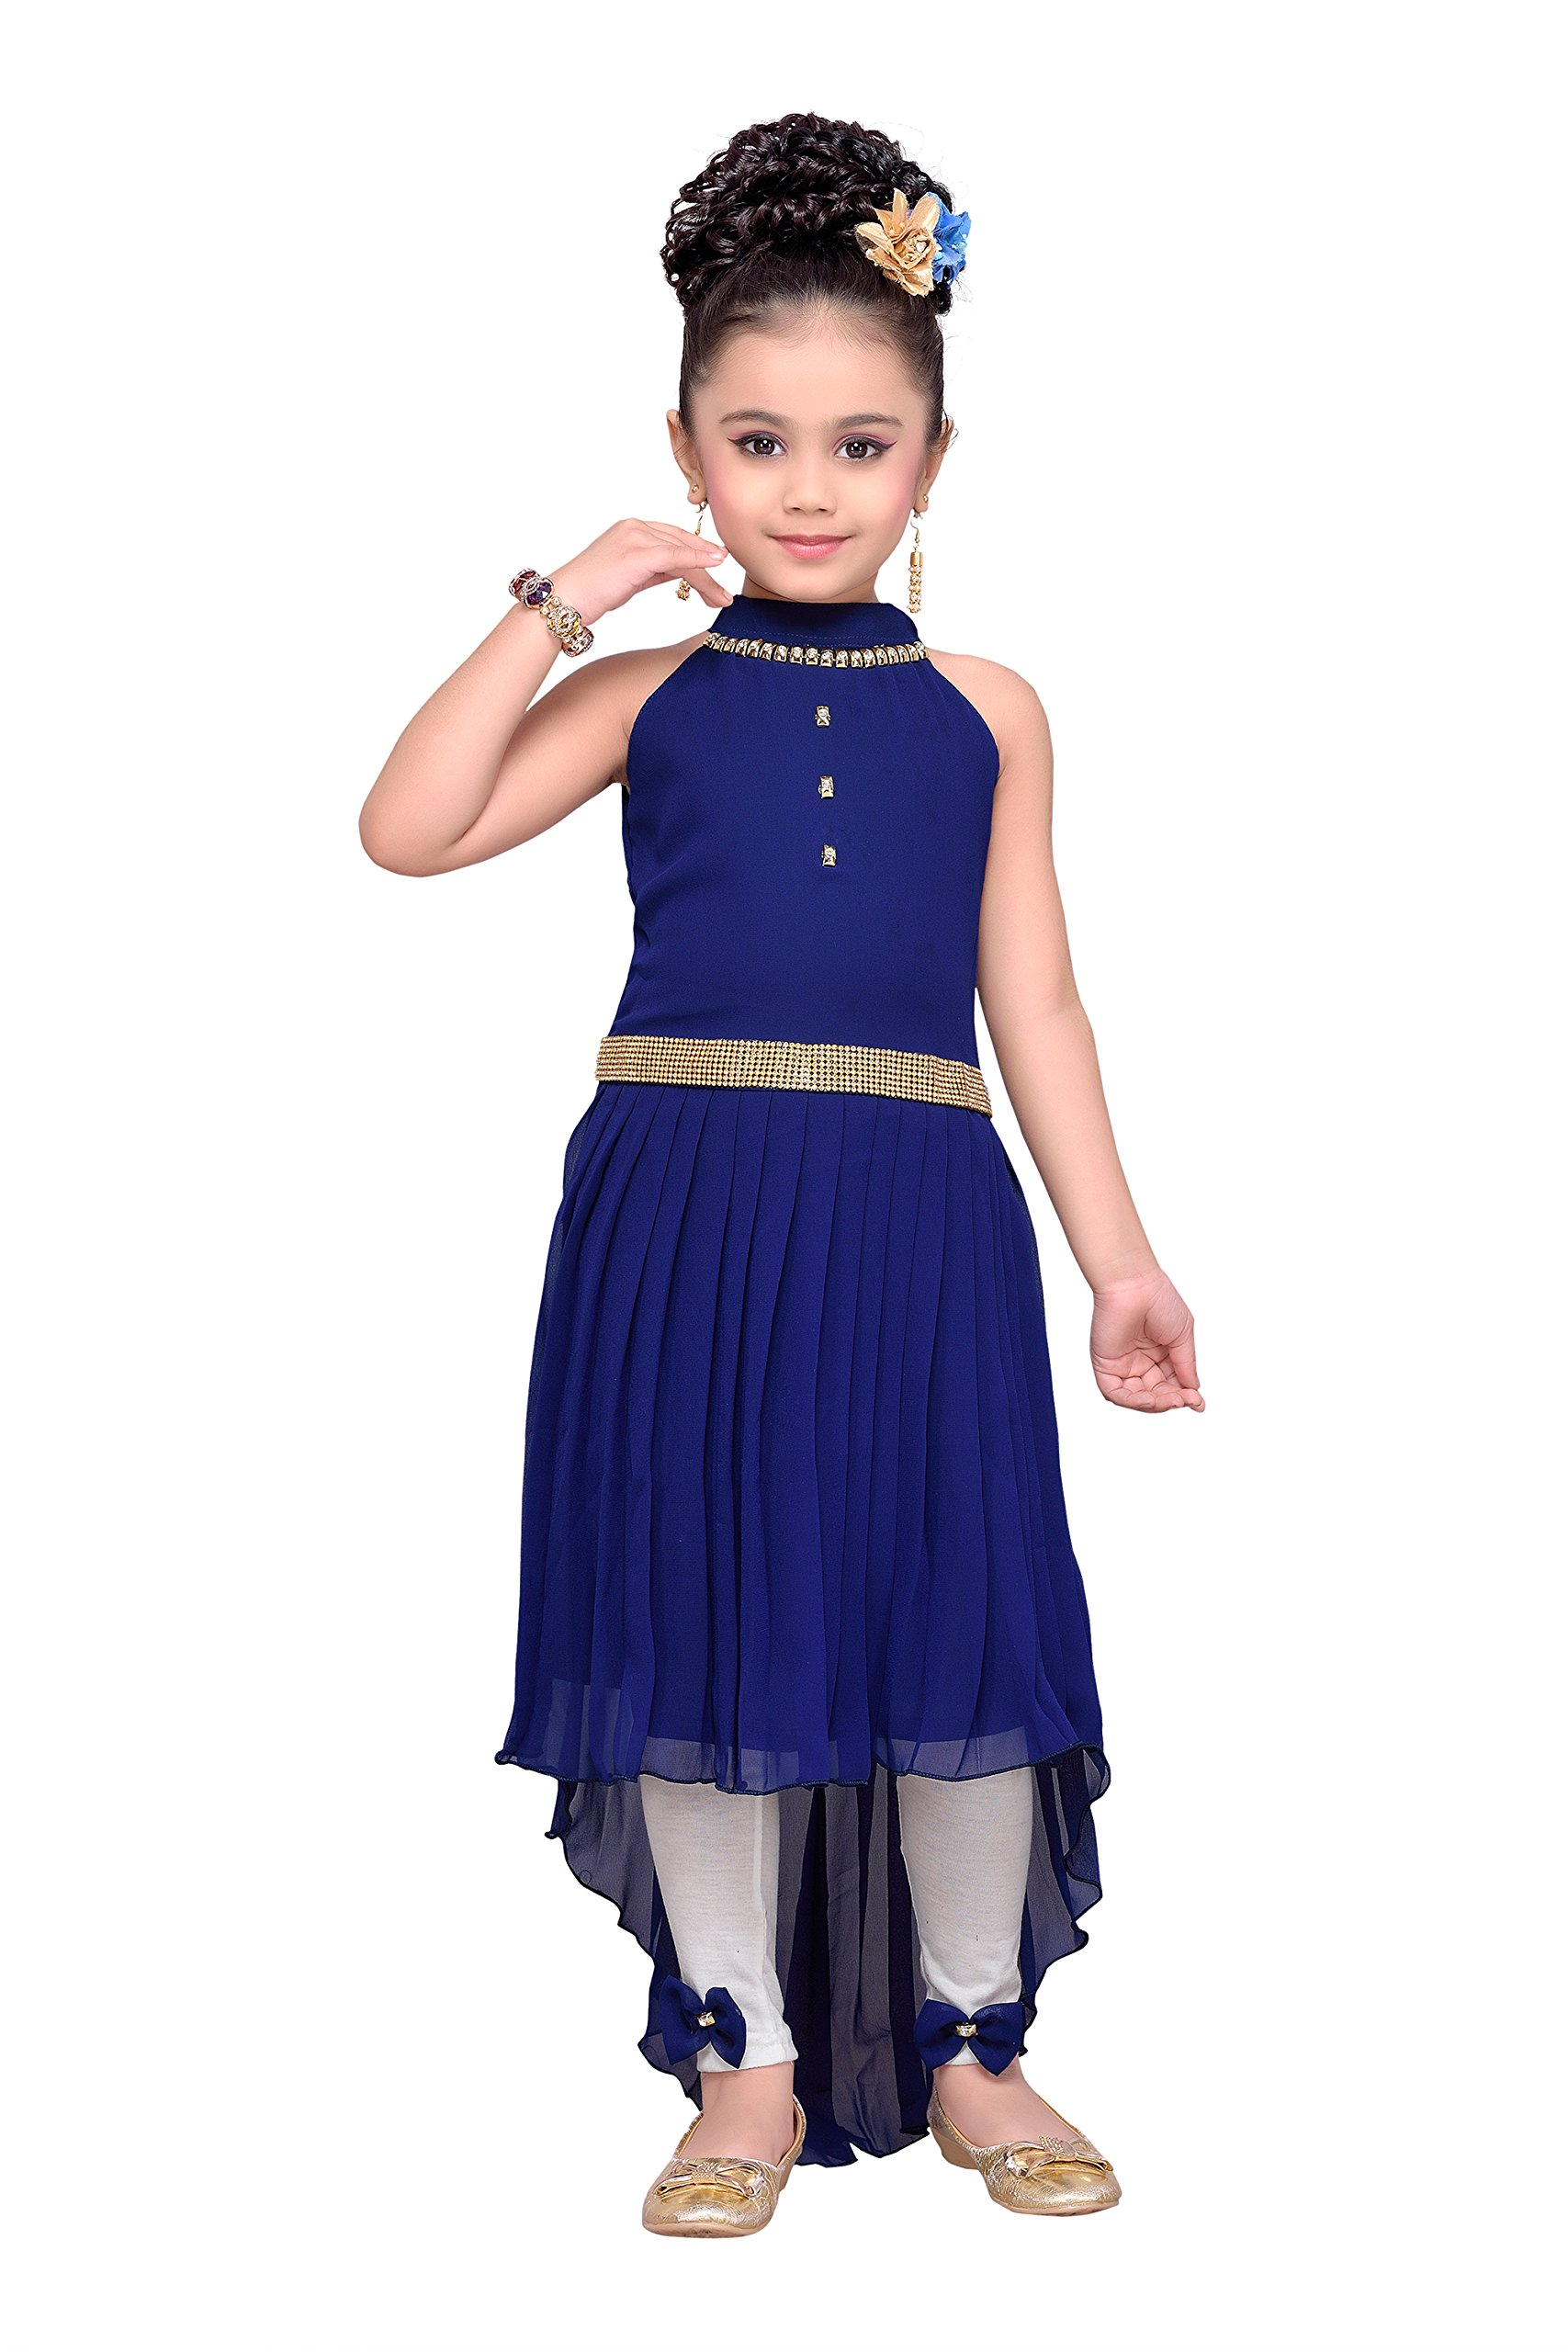 4a12e93ad4 Galleon - ADIVA Girl's Indian Party Wear High Low Dress Clothing Set For  Kids (G-1121-NAVY-BLUE-22)